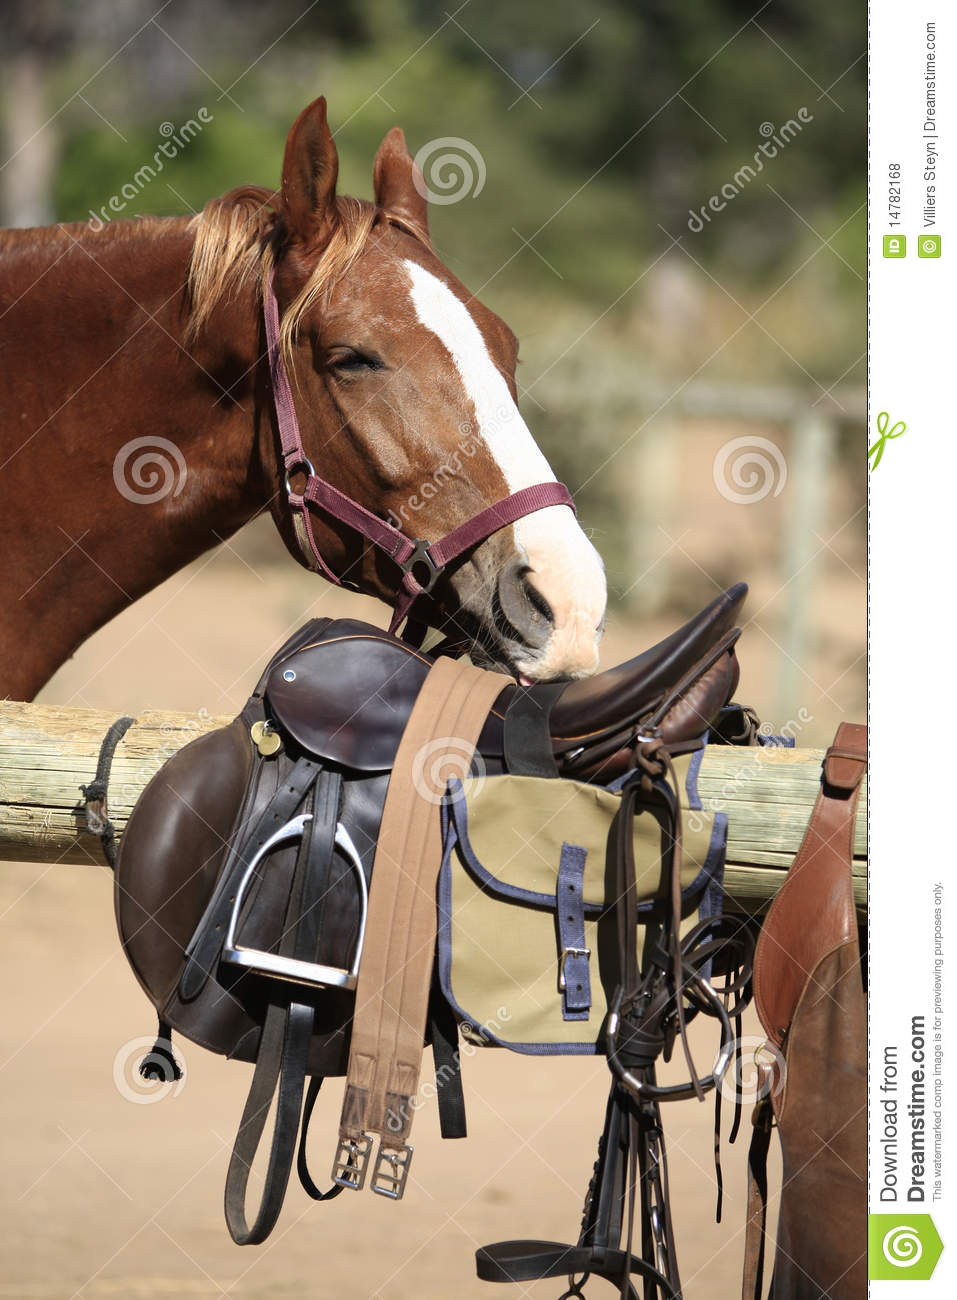 Horse Smelling Riding Gear Stock Photo Image Of Metal 14782168